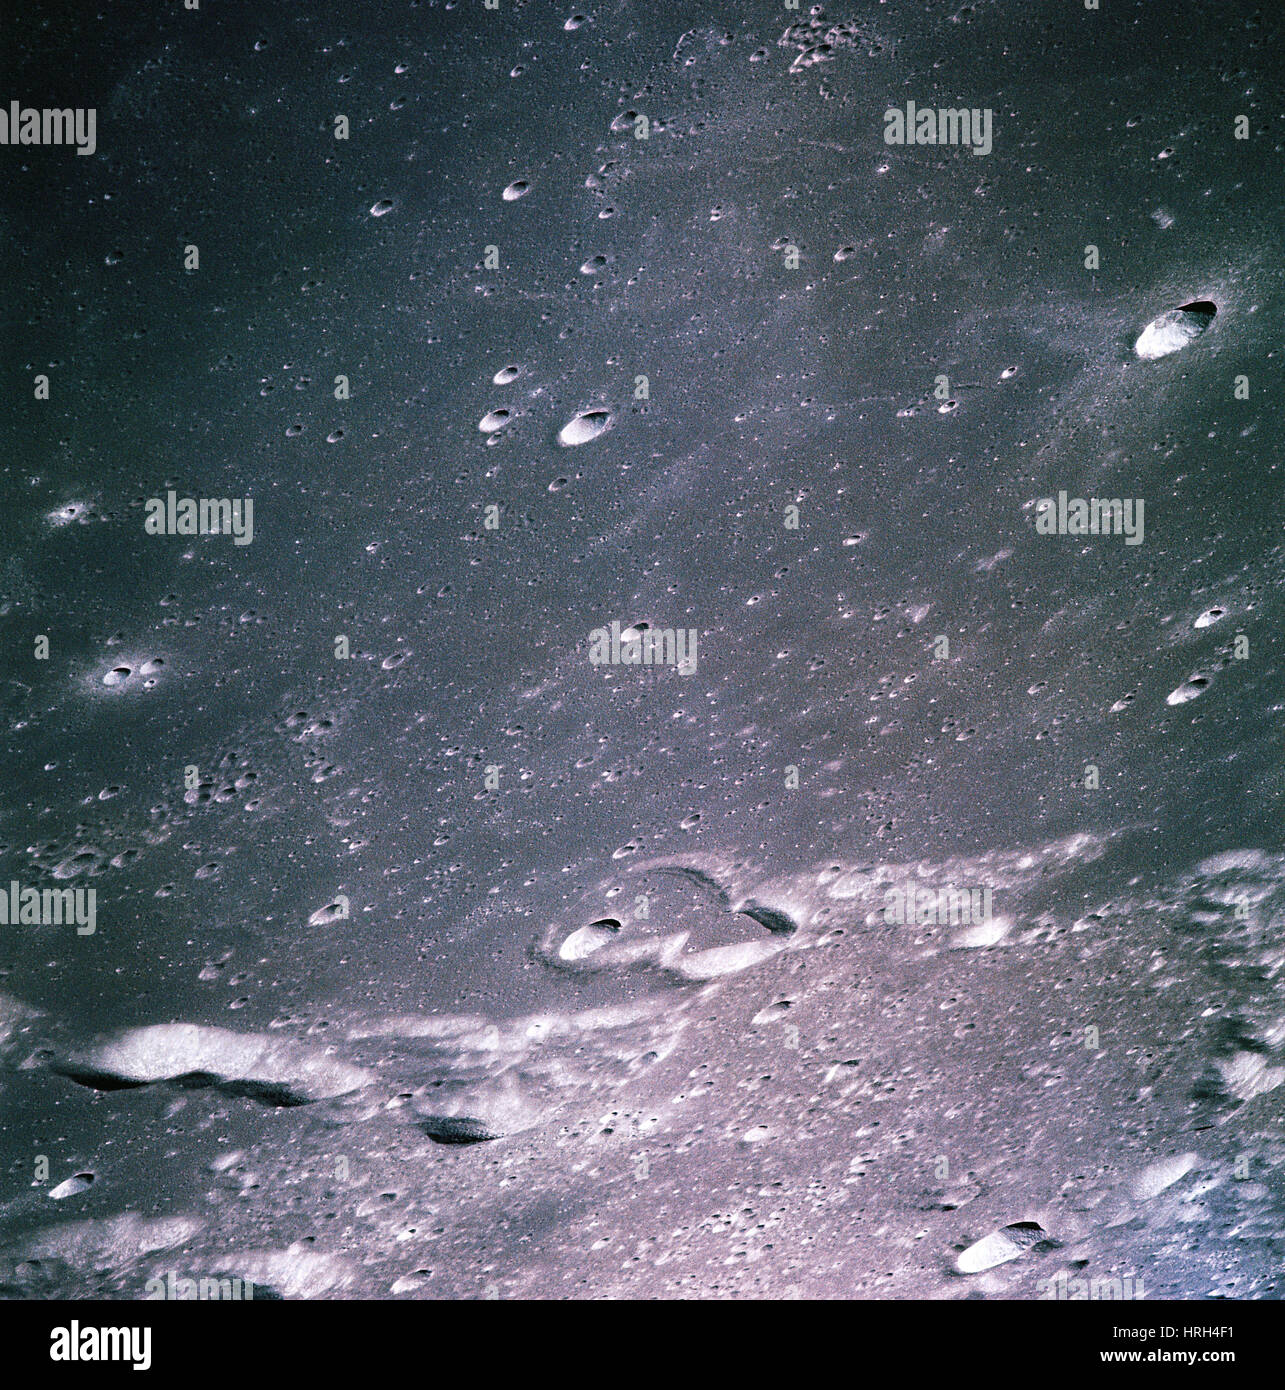 La lune d'Apollo 14 Photo Stock